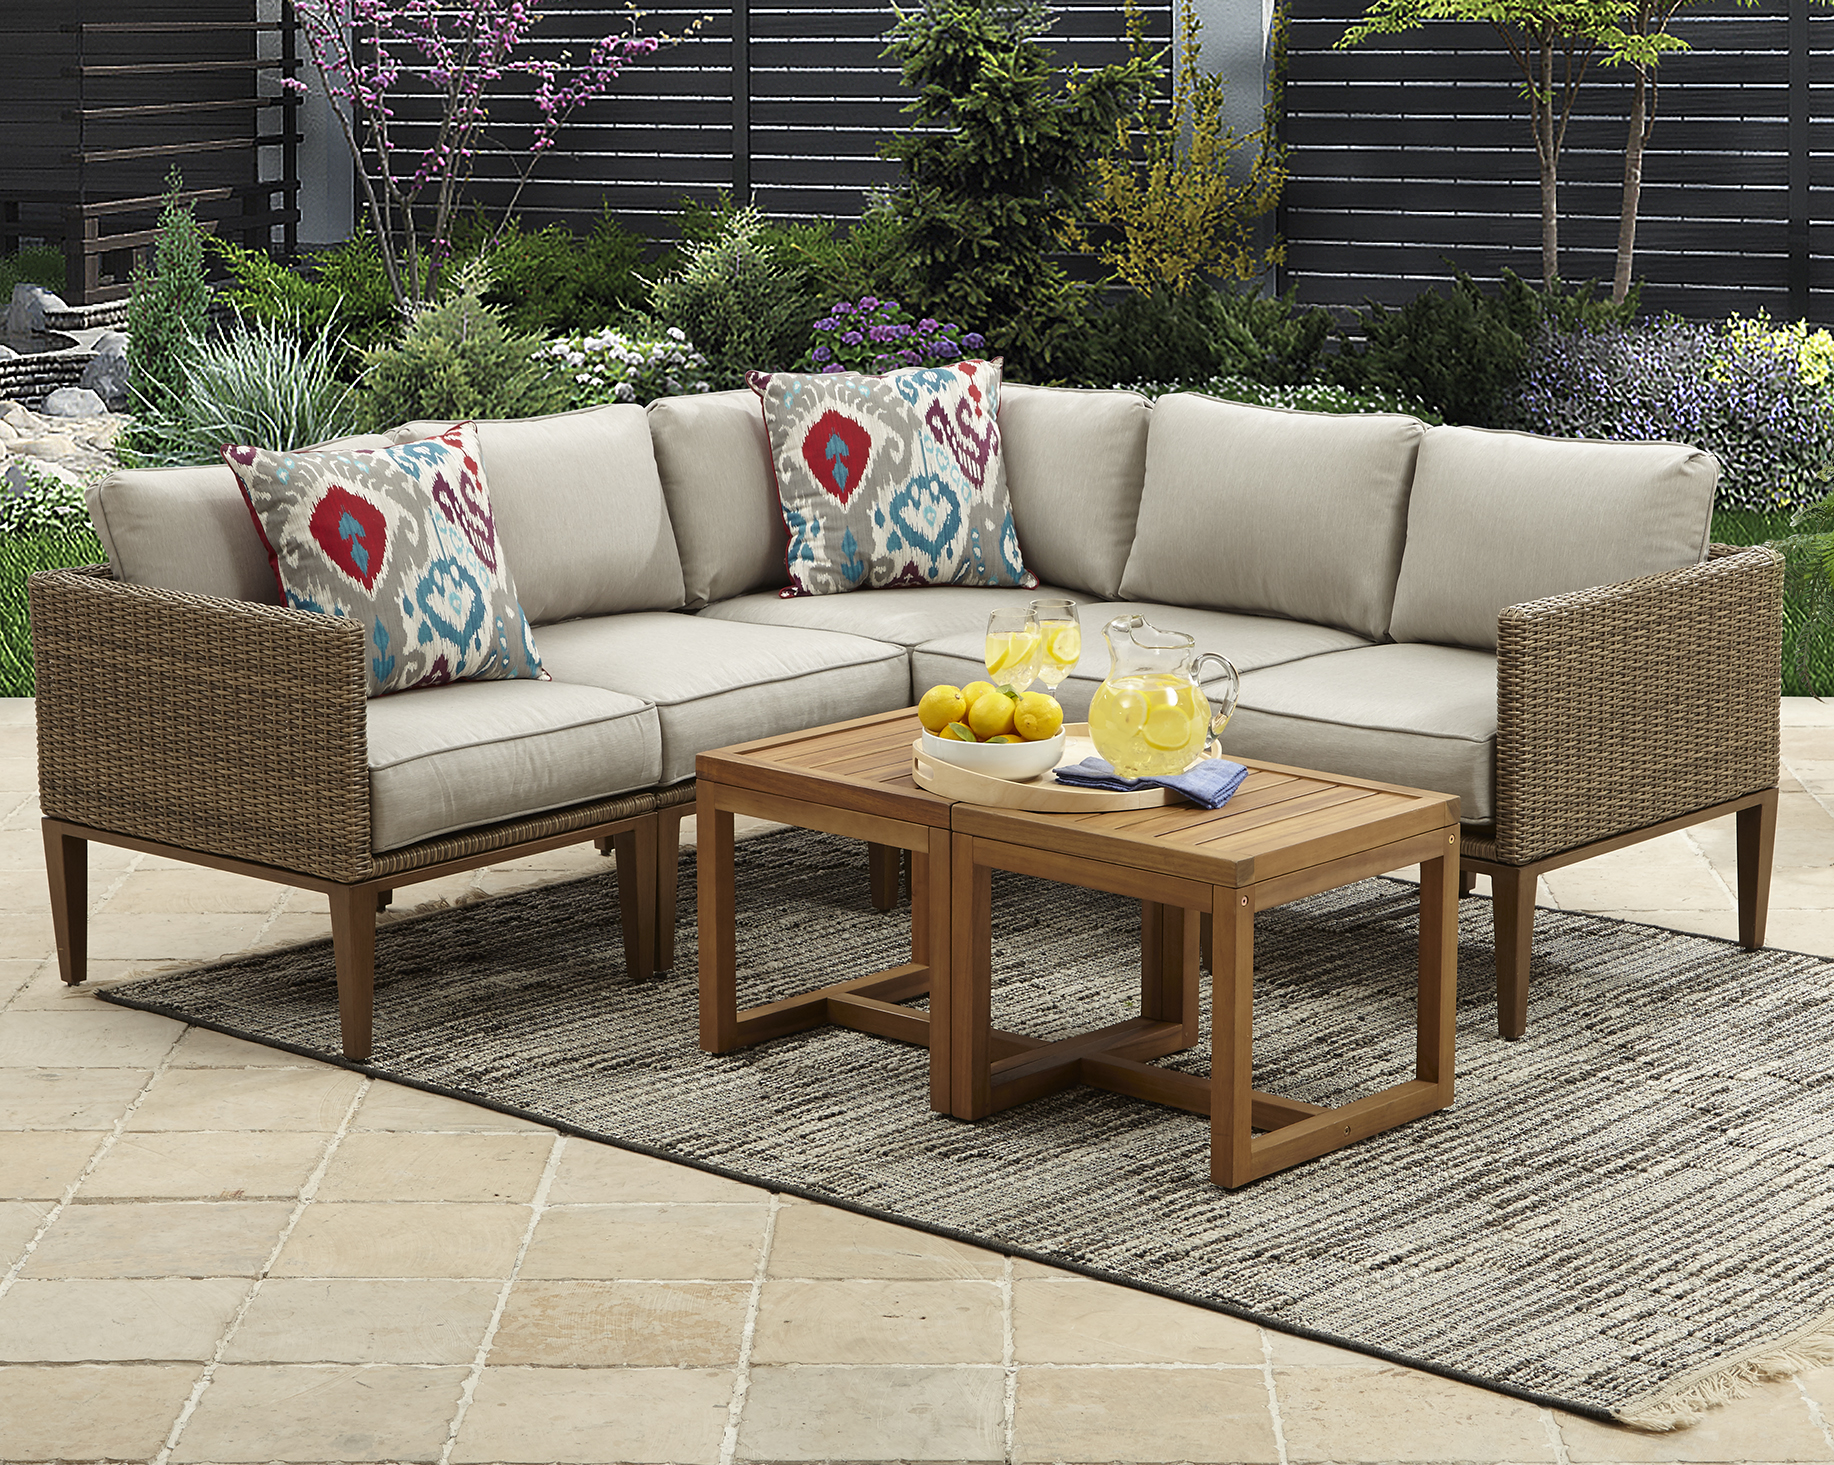 Better Homes and Gardens Davenport 7-Piece Outdoor Sectional Sofa Set